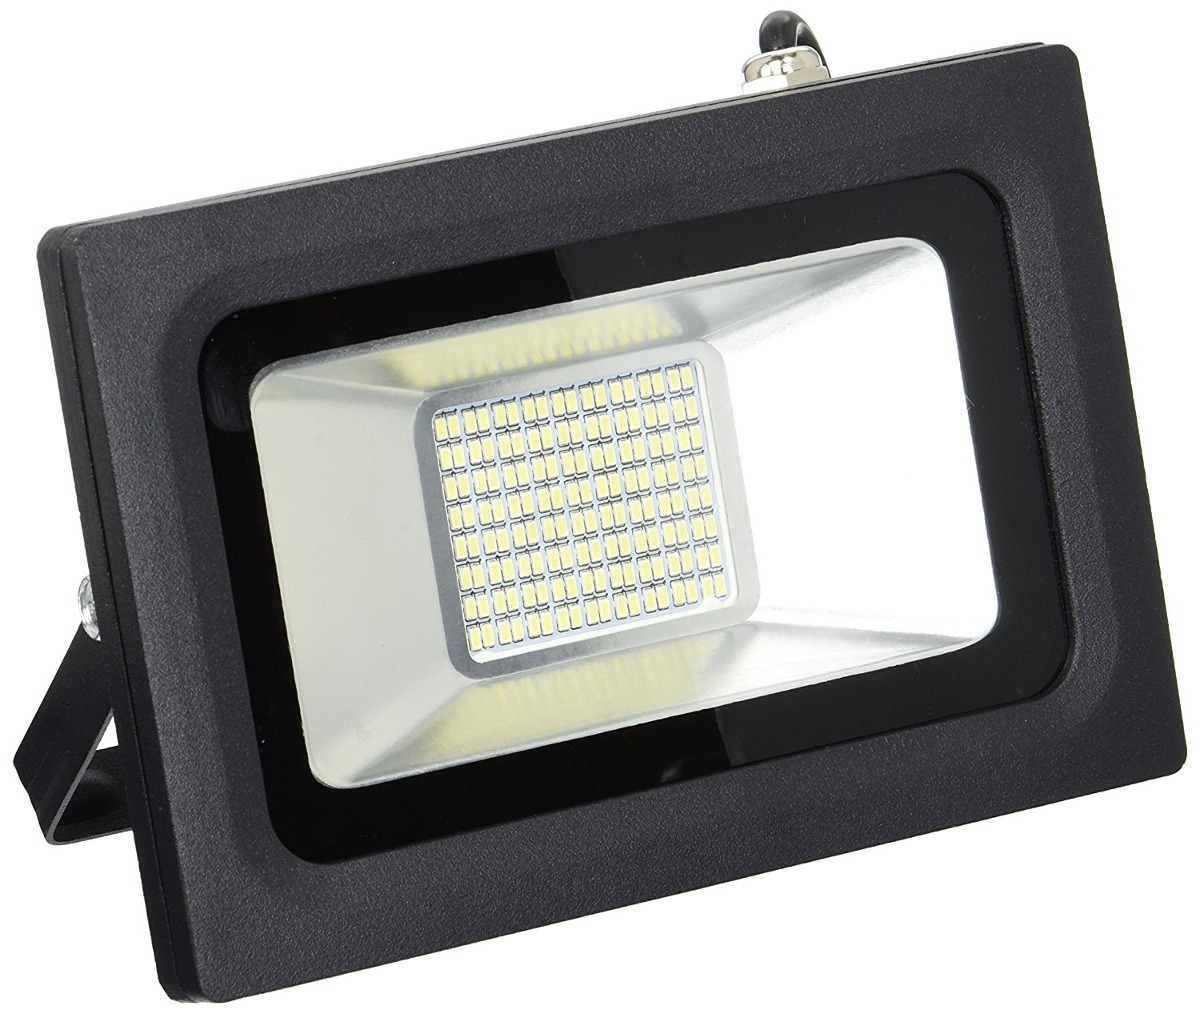 Solla 30w led flood light outdoor security lights 2250lm w flood light outdoor security lights 2250lm w cargando zoom aloadofball Images